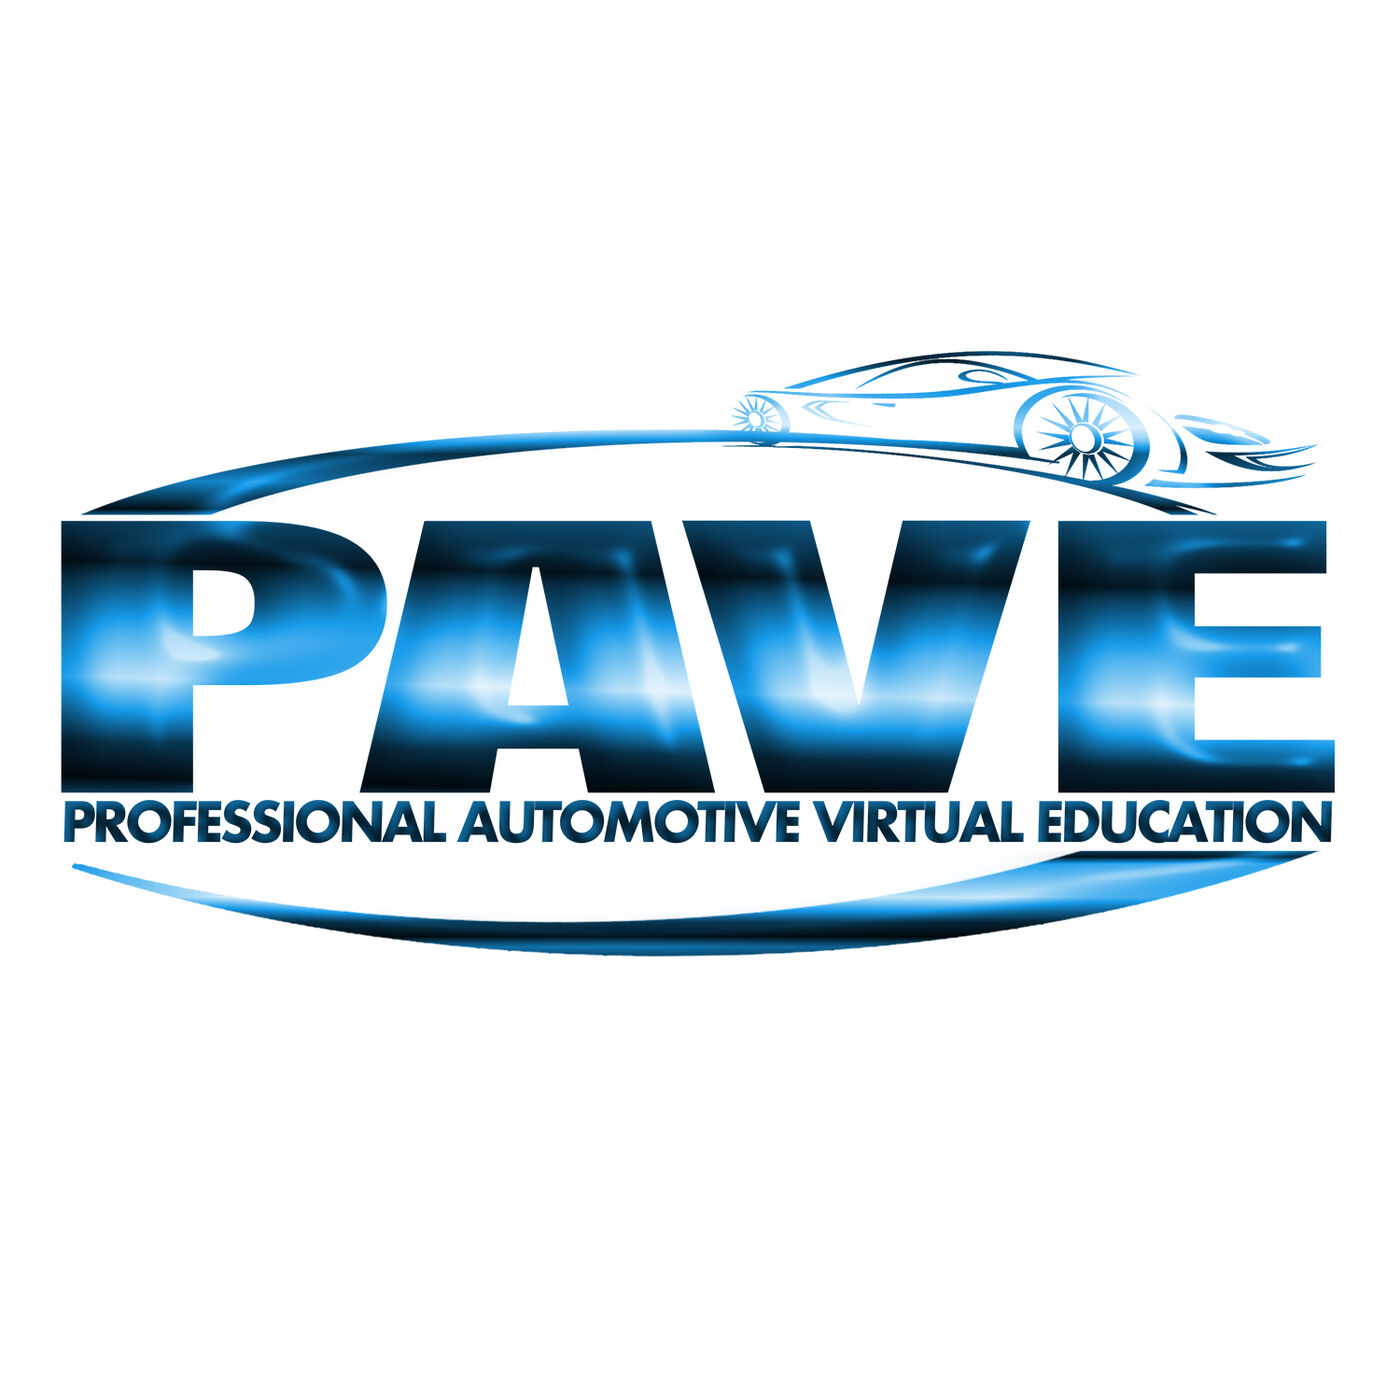 Episode 73 – New PAVE Event Spotlights Virtual Training and Industry Cooperation